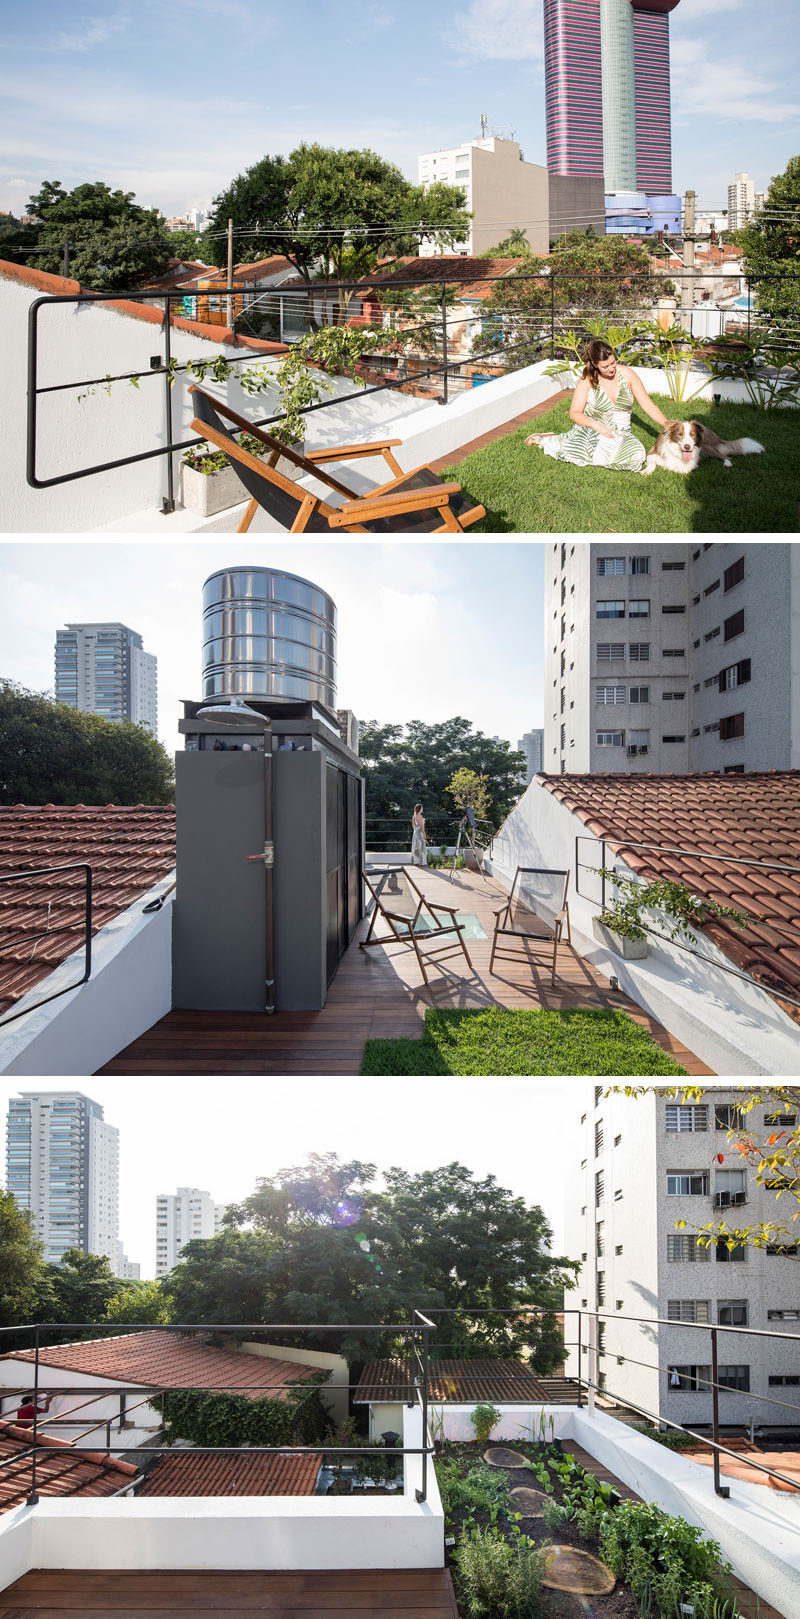 This small house has a rooftop deck with a small grassy area and garden, as well as space for relaxing. #RooftopDeck #RooftopGarden